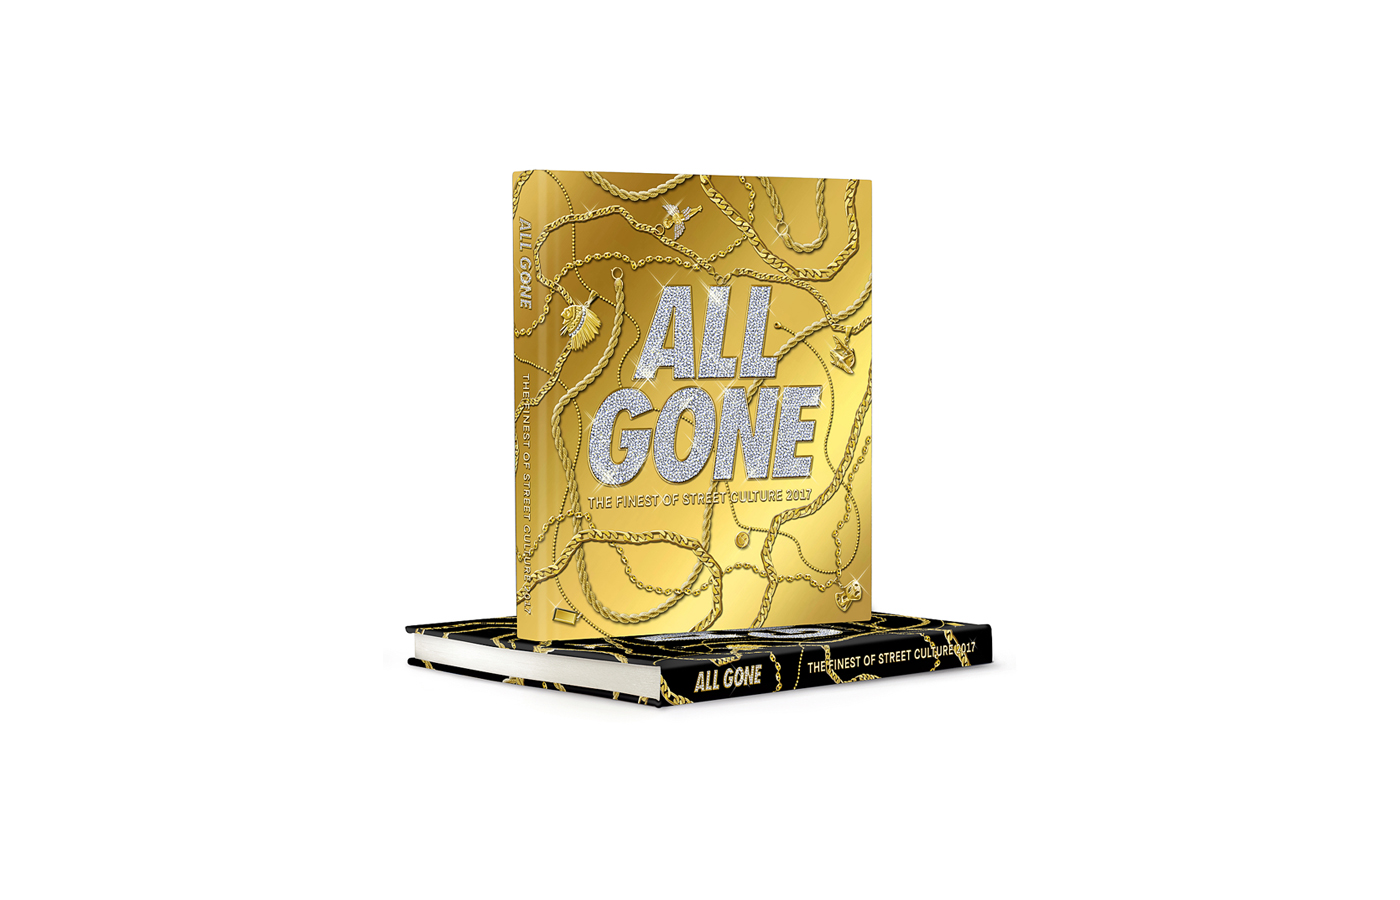 ALL GONE 2017